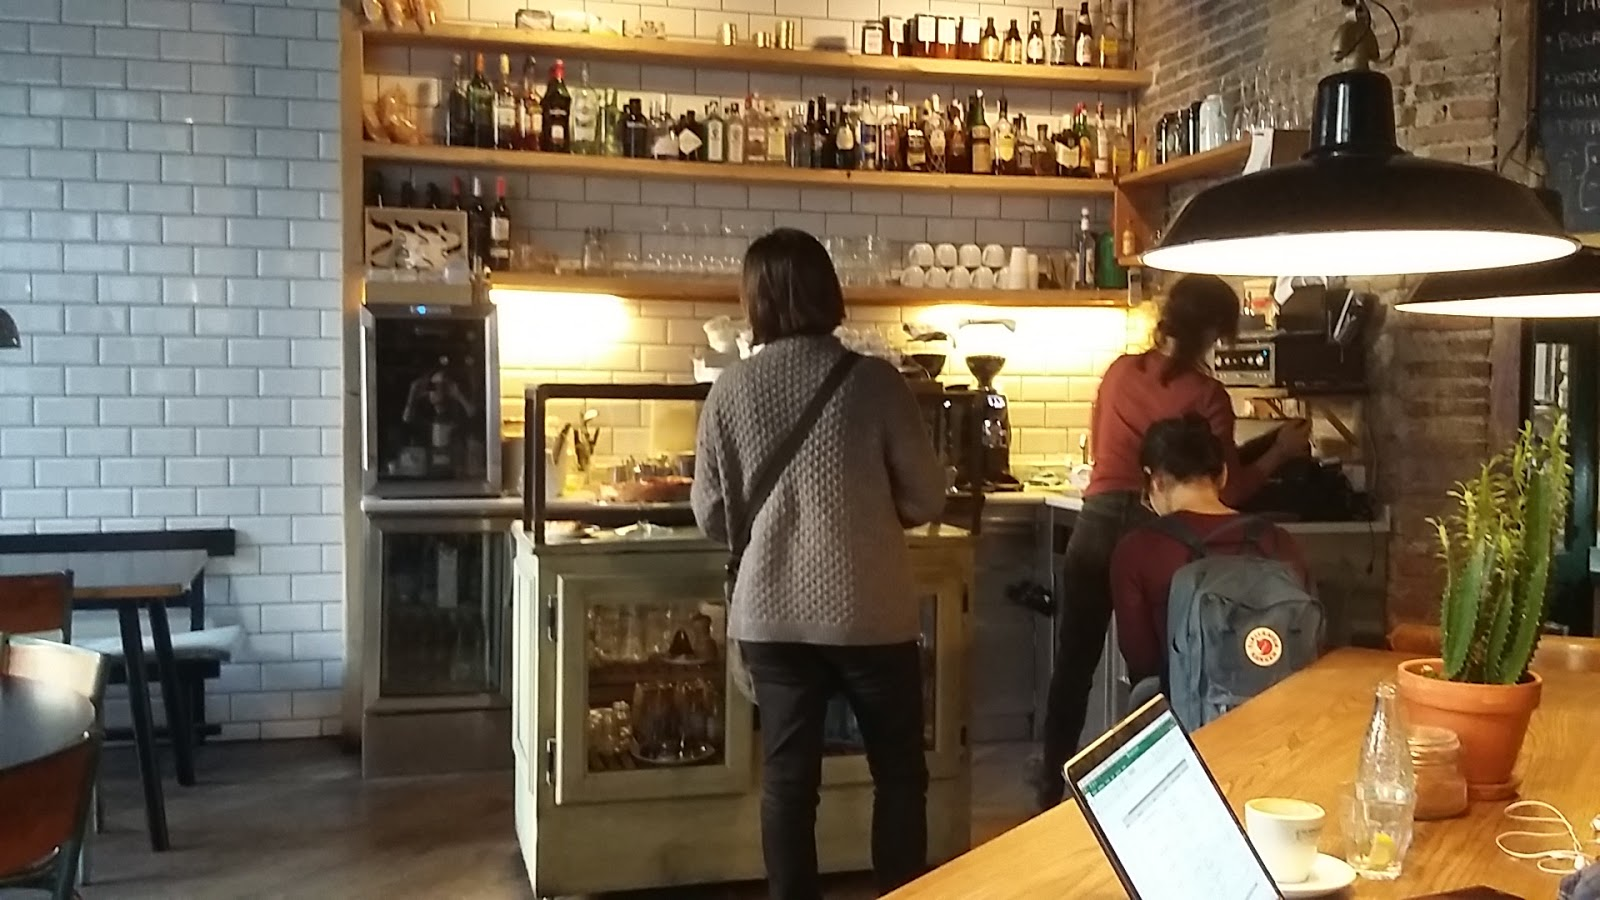 Tarannà Cafè: A Work-Friendly Place in Barcelona